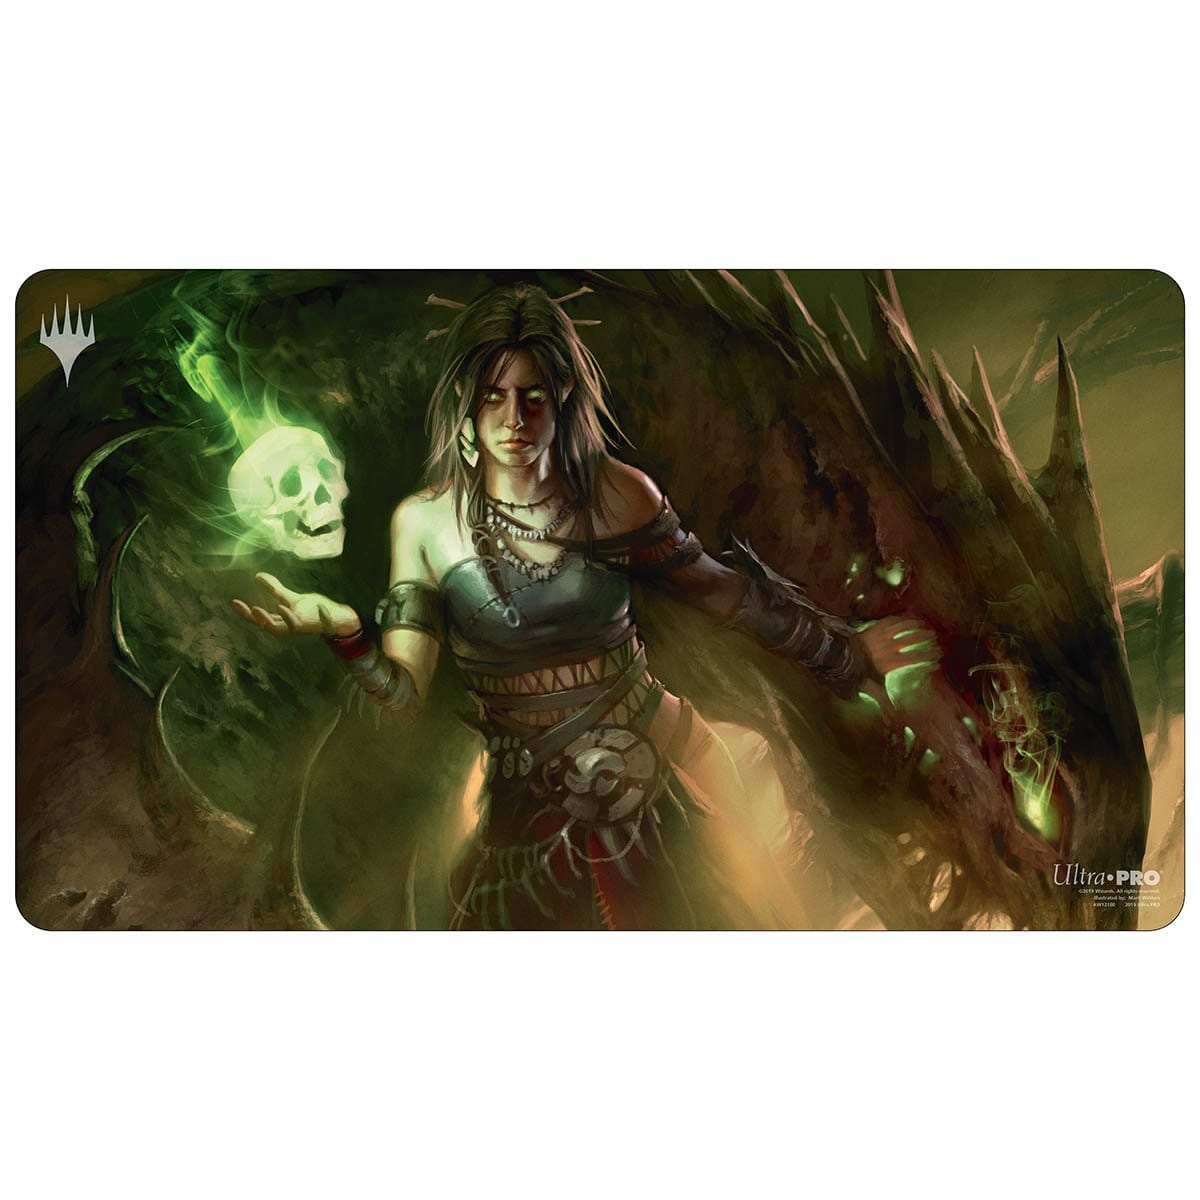 Meren of Clan Nel Toth Playmat - Playmat - Original Magic Art - Accessories for Magic the Gathering and other card games